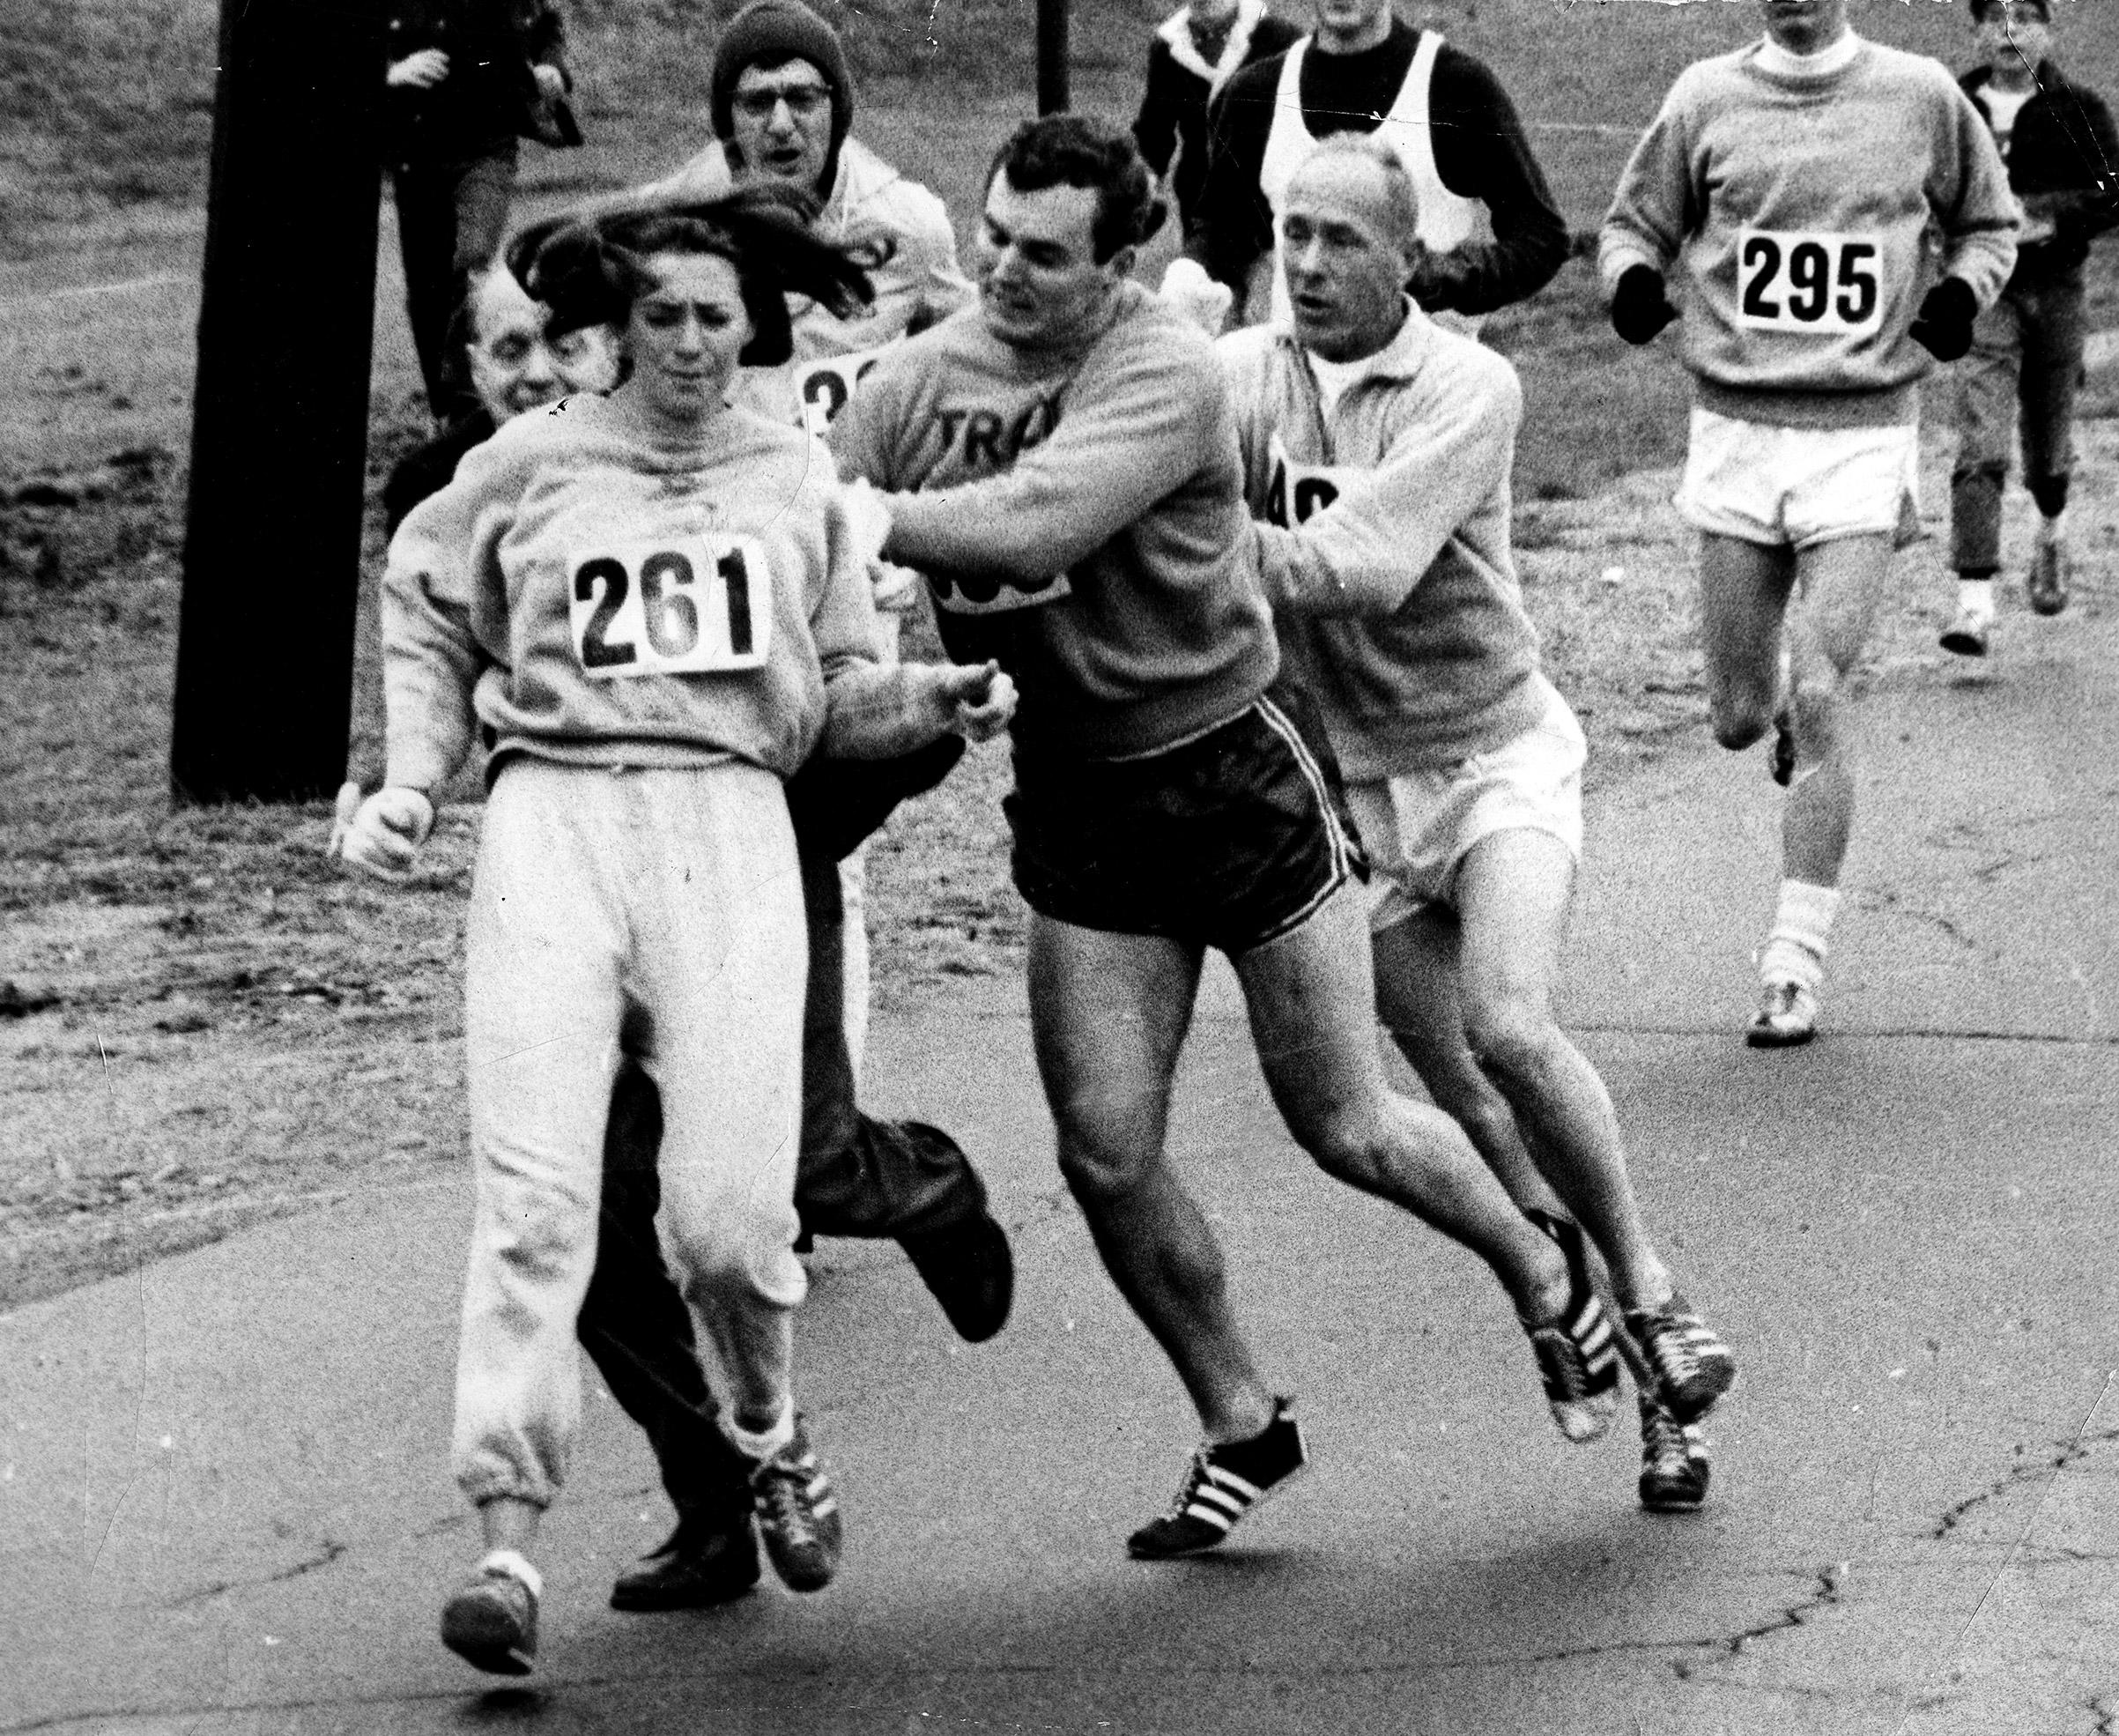 KATHY SWITZER became the first woman to run the Boston marathon in 1967.